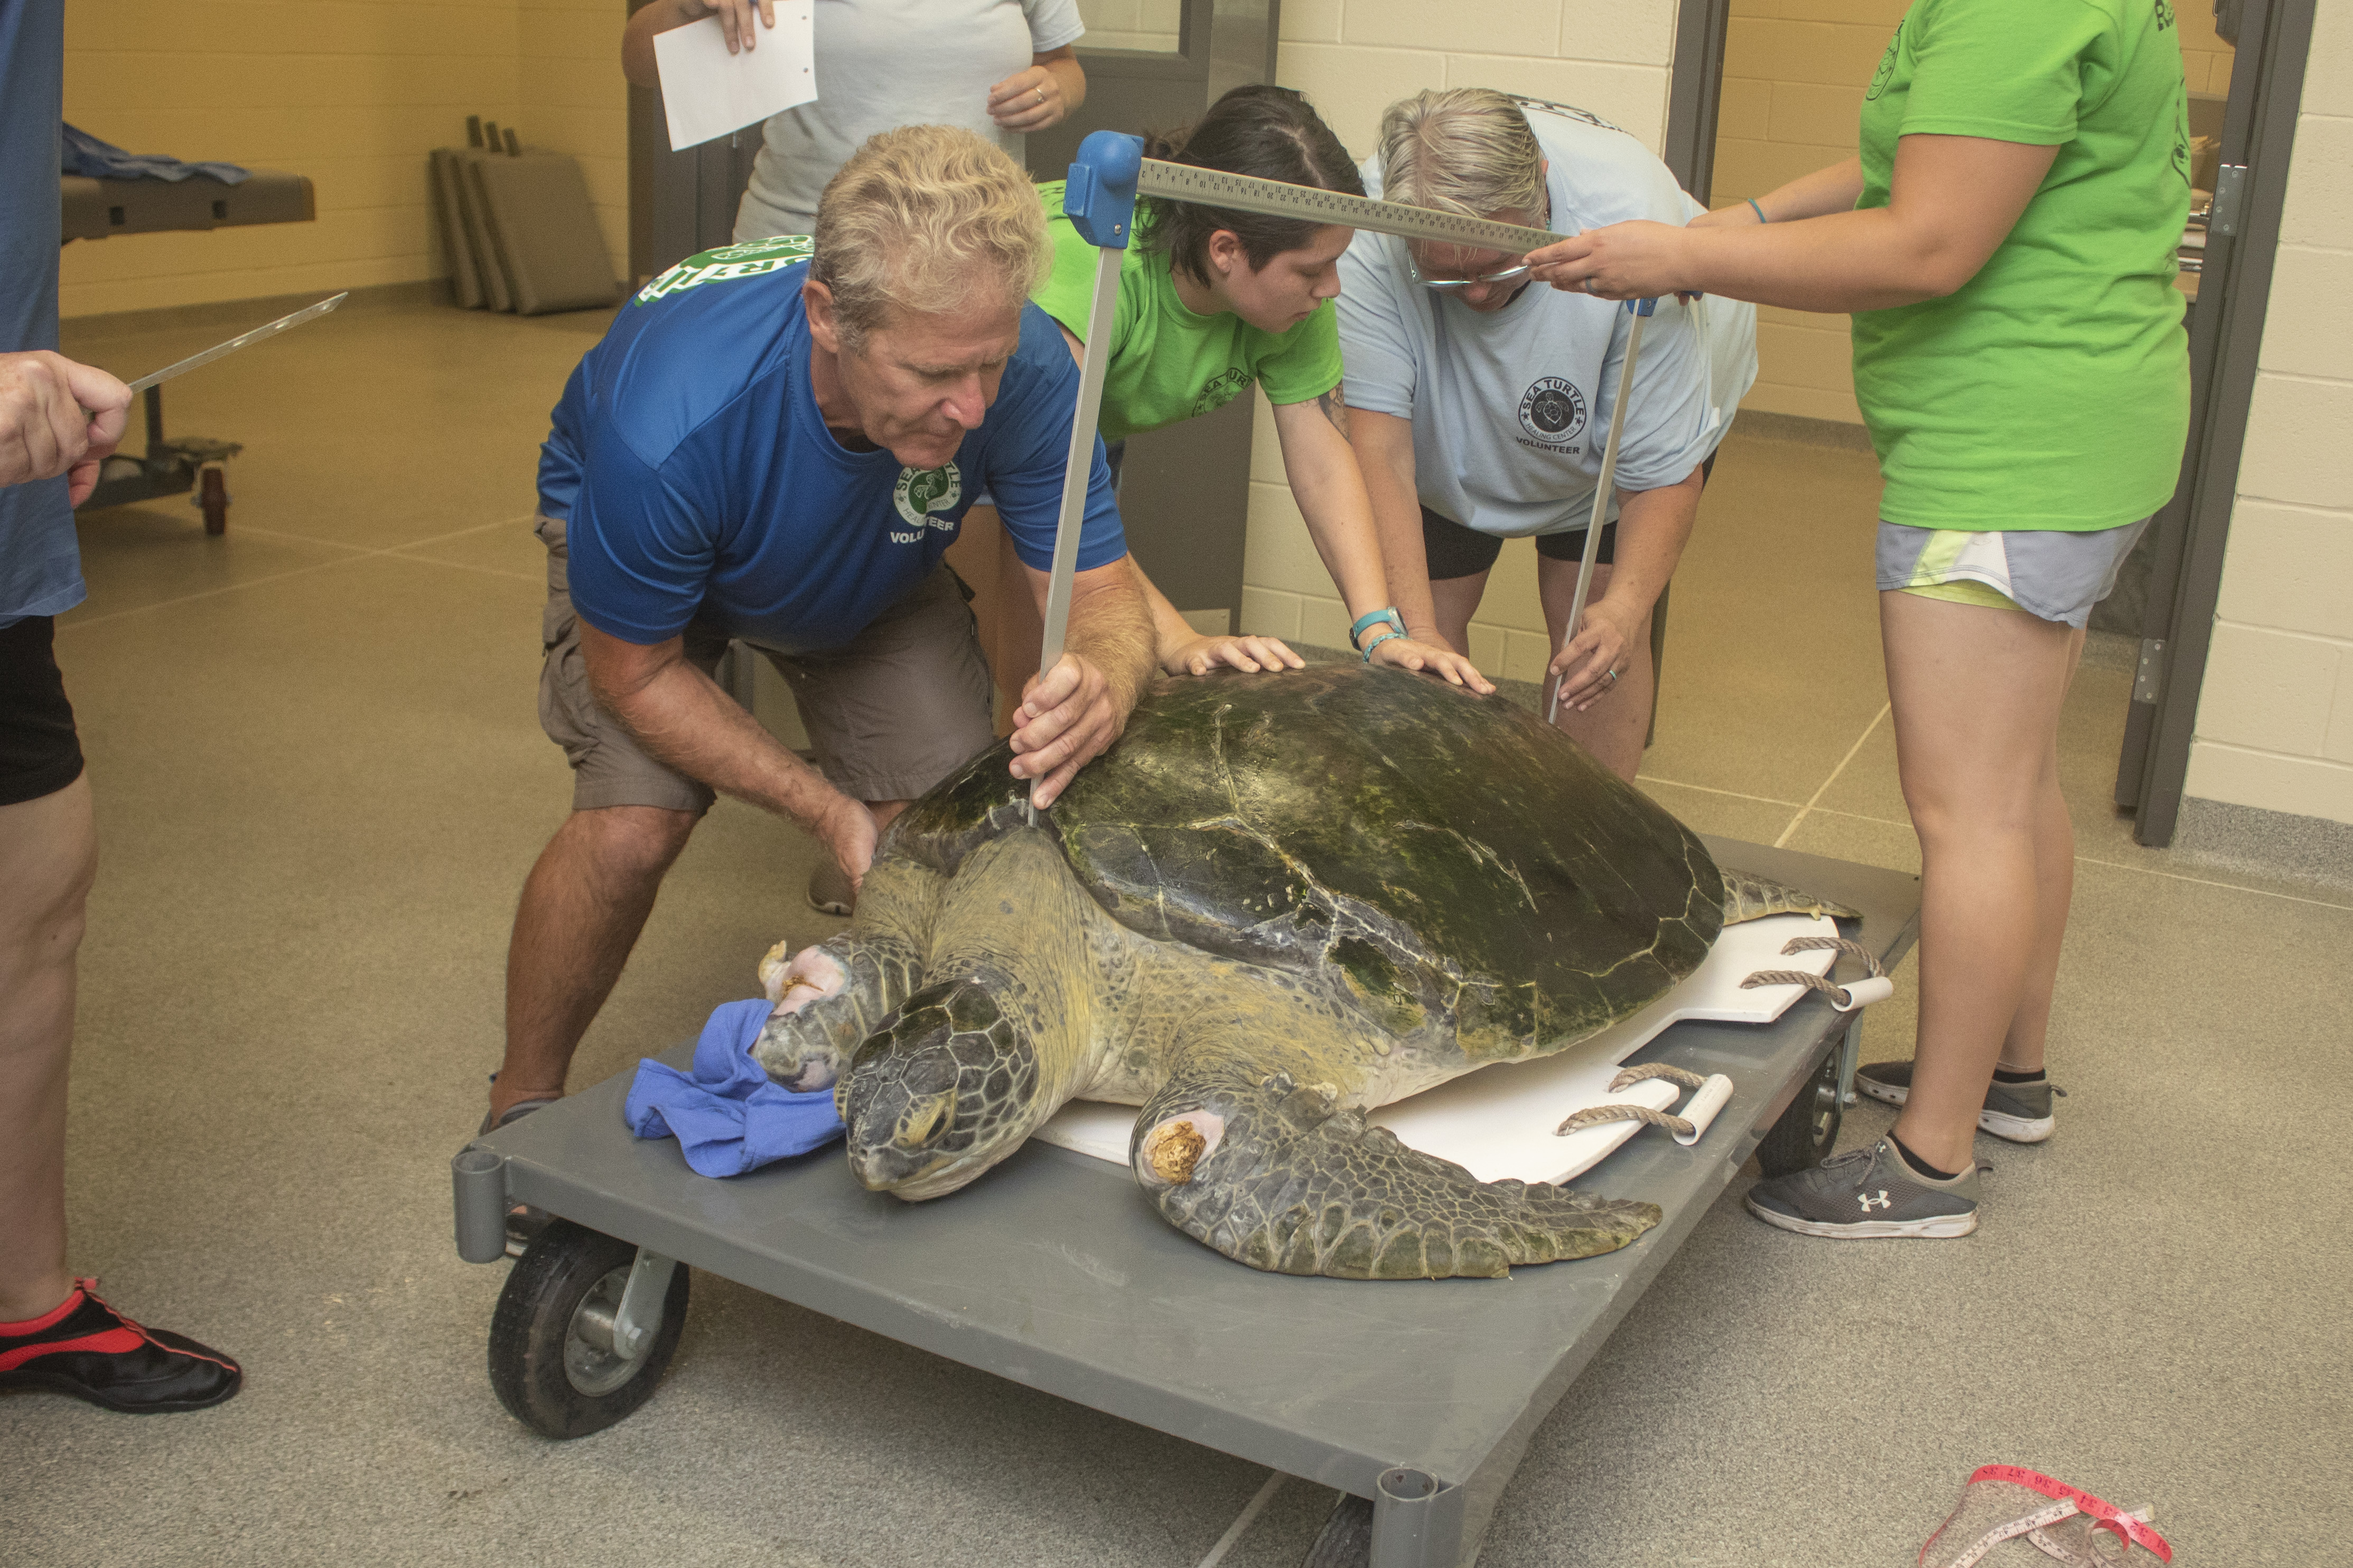 Guacamole, a green sea turtle, is measured